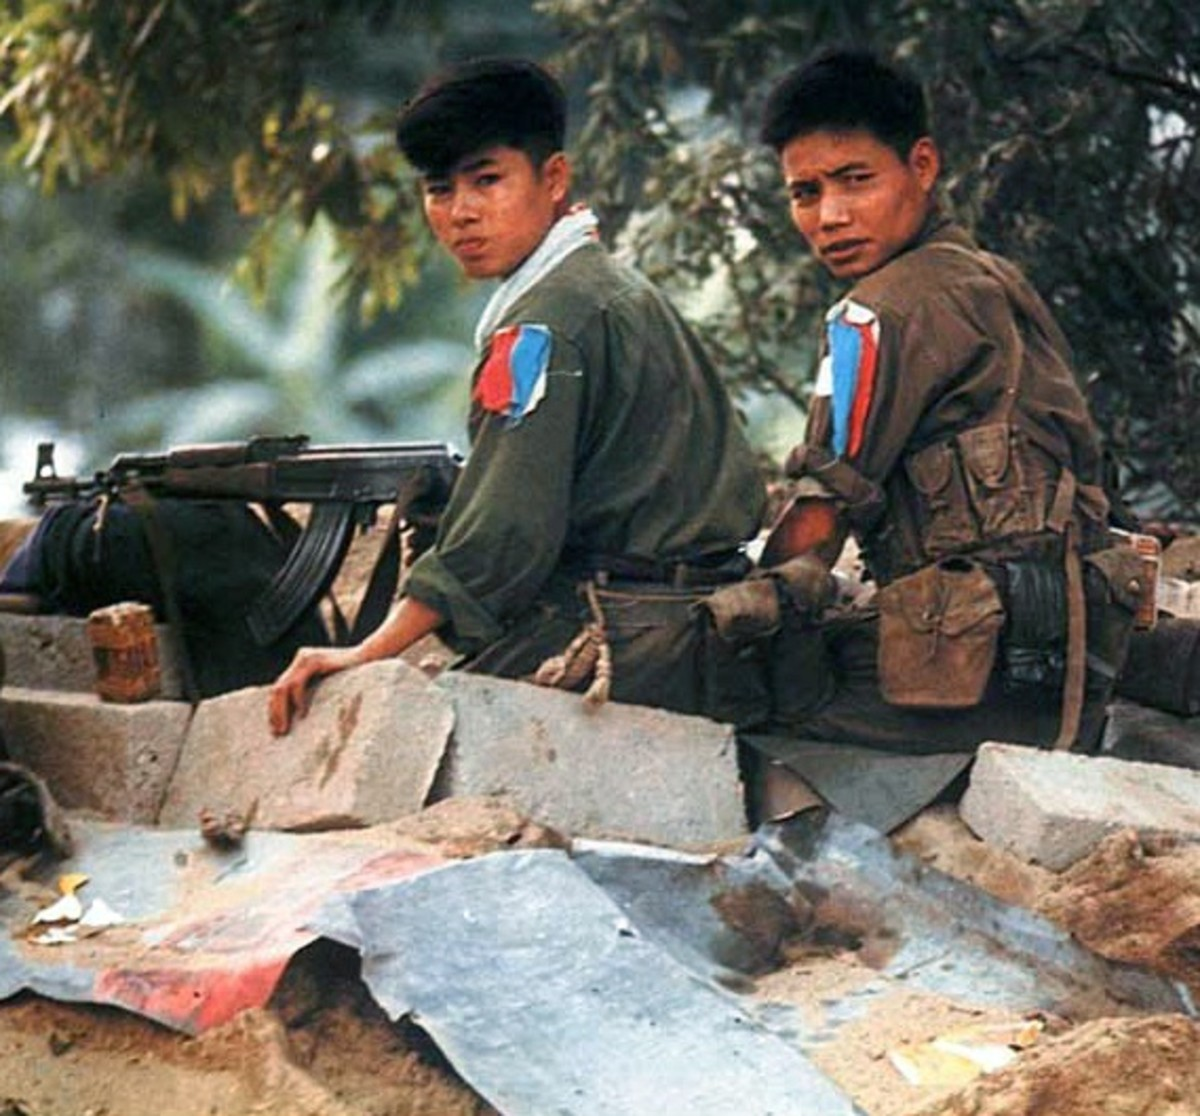 Ho Chi Minh put some of his very best troops in Hue. They would all pin to their left sleeve torn strips of red, blue, and white cloth to represent the People's Liberation Front. They would not back down from American attacks most would die in Hue.